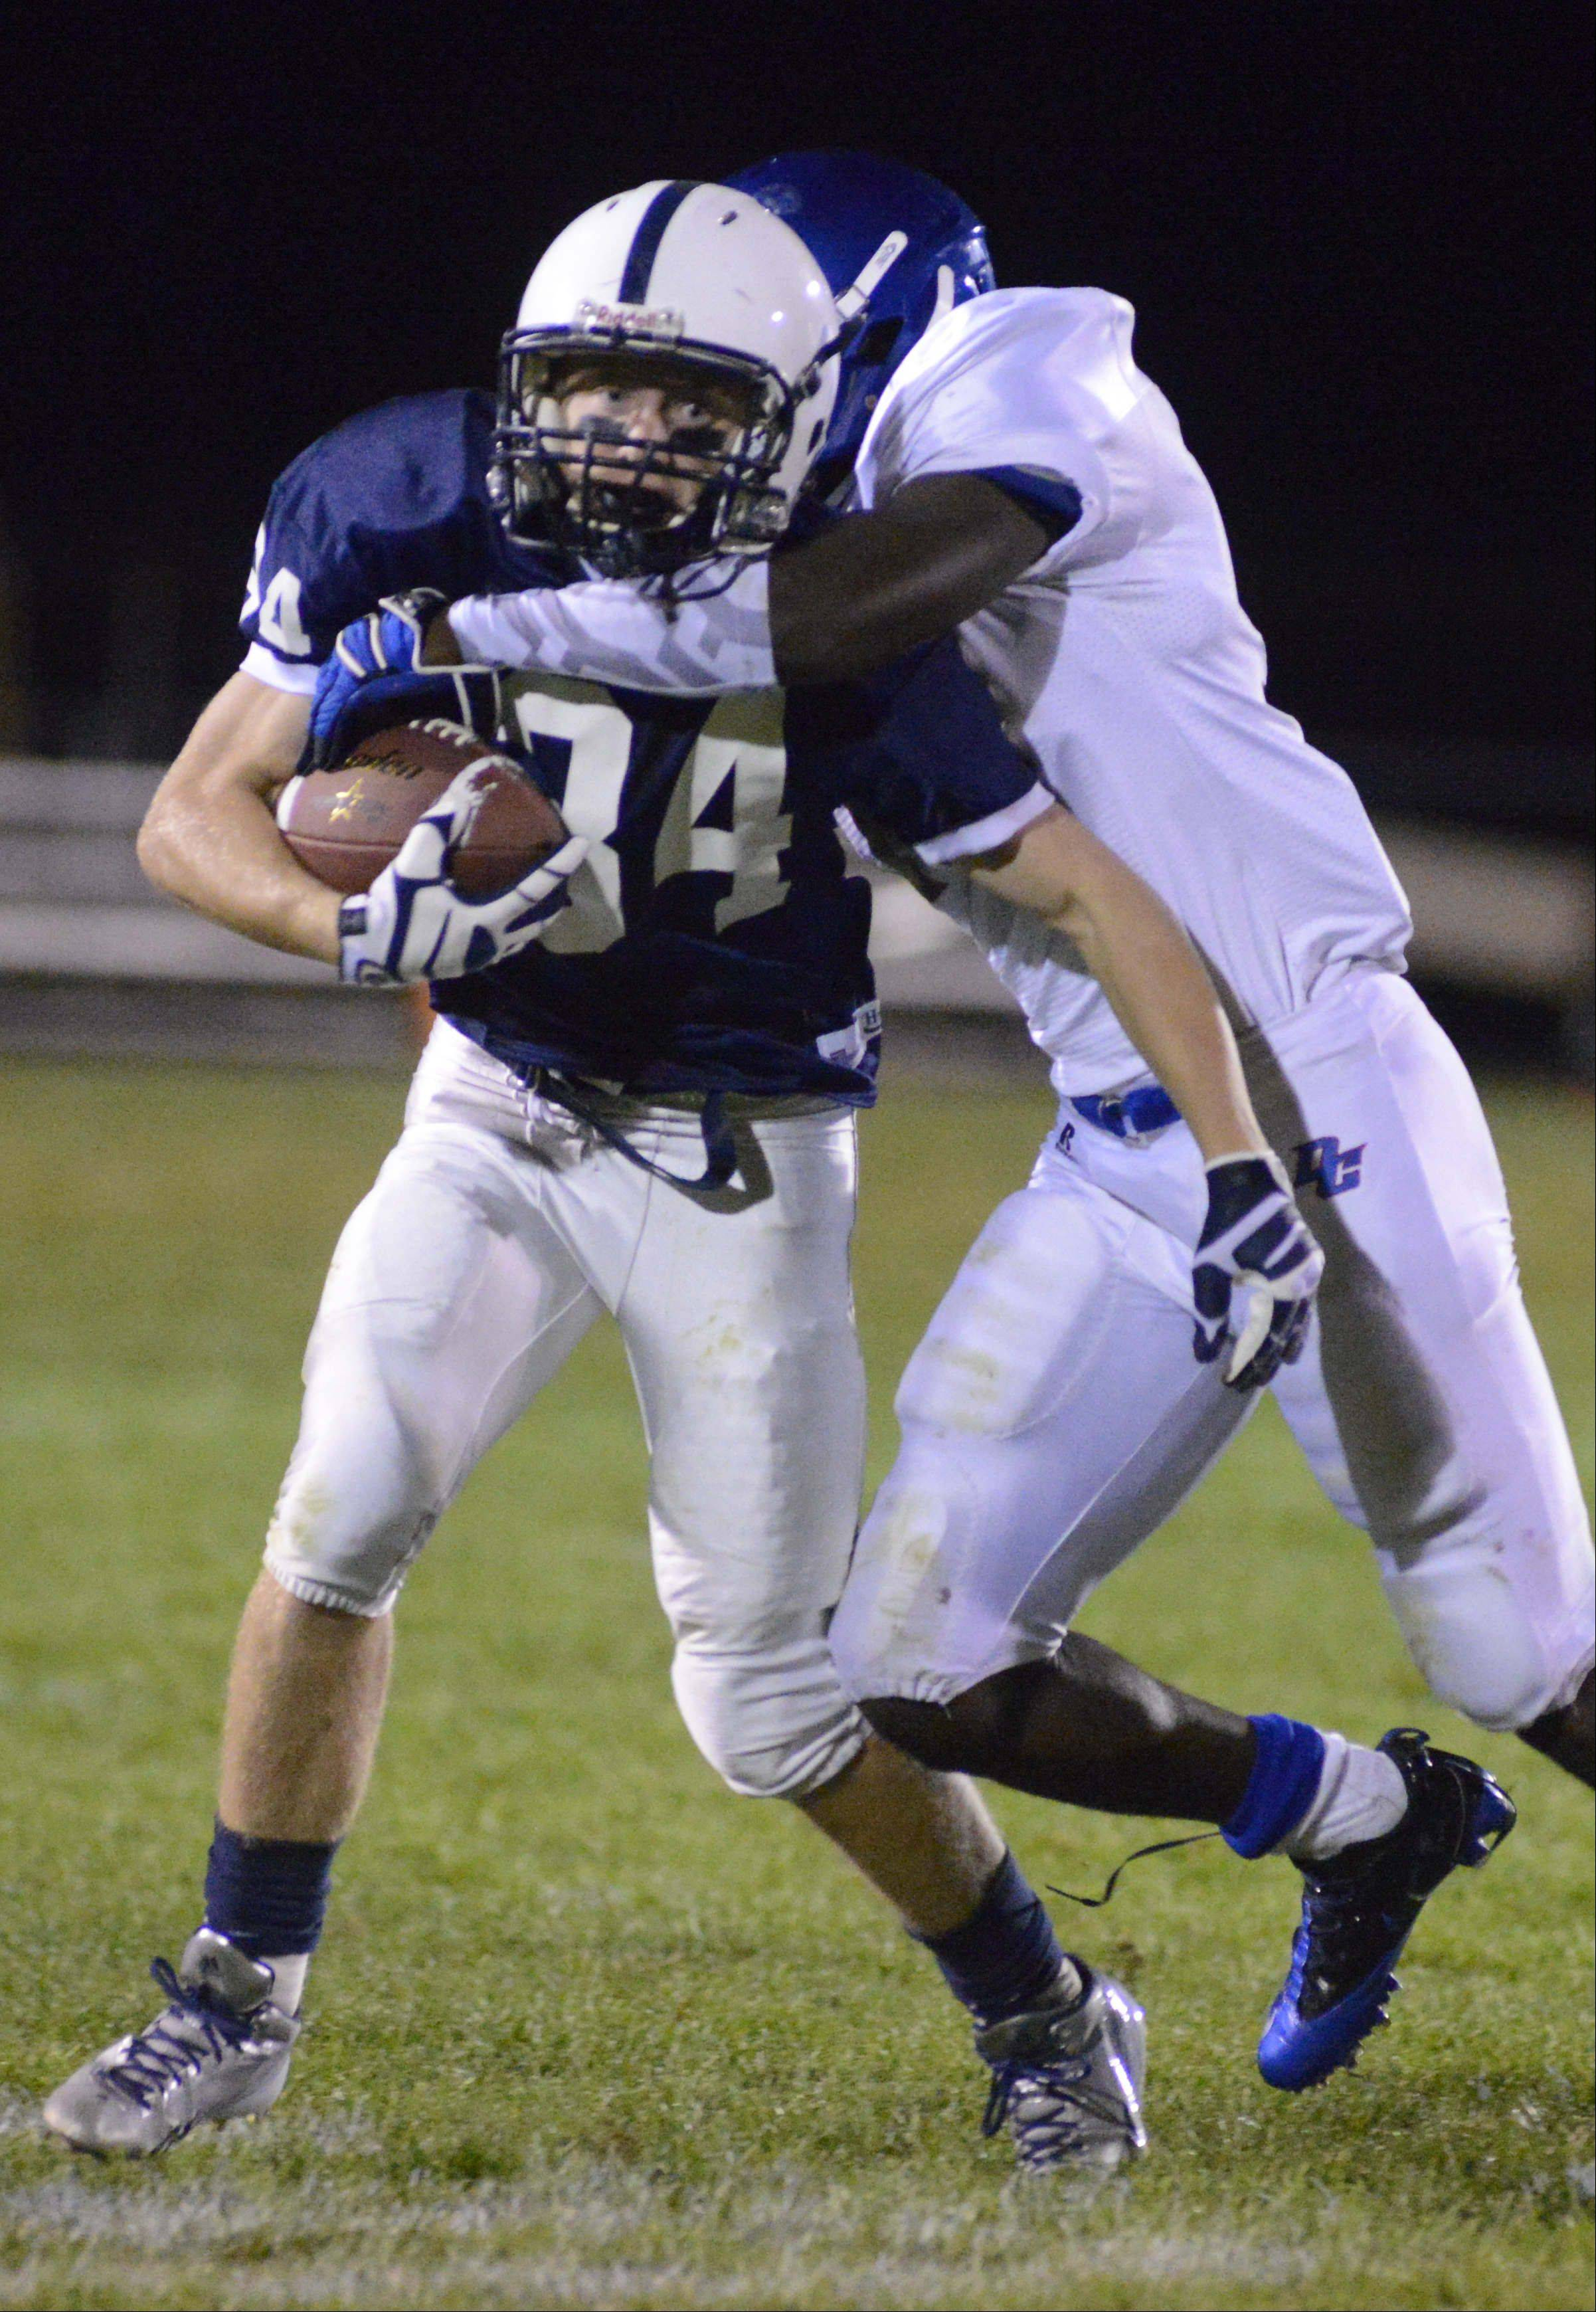 Week 4 - Images from the Dundee-Crown vs. Cary-Grove football game Friday, September 20, 2013.